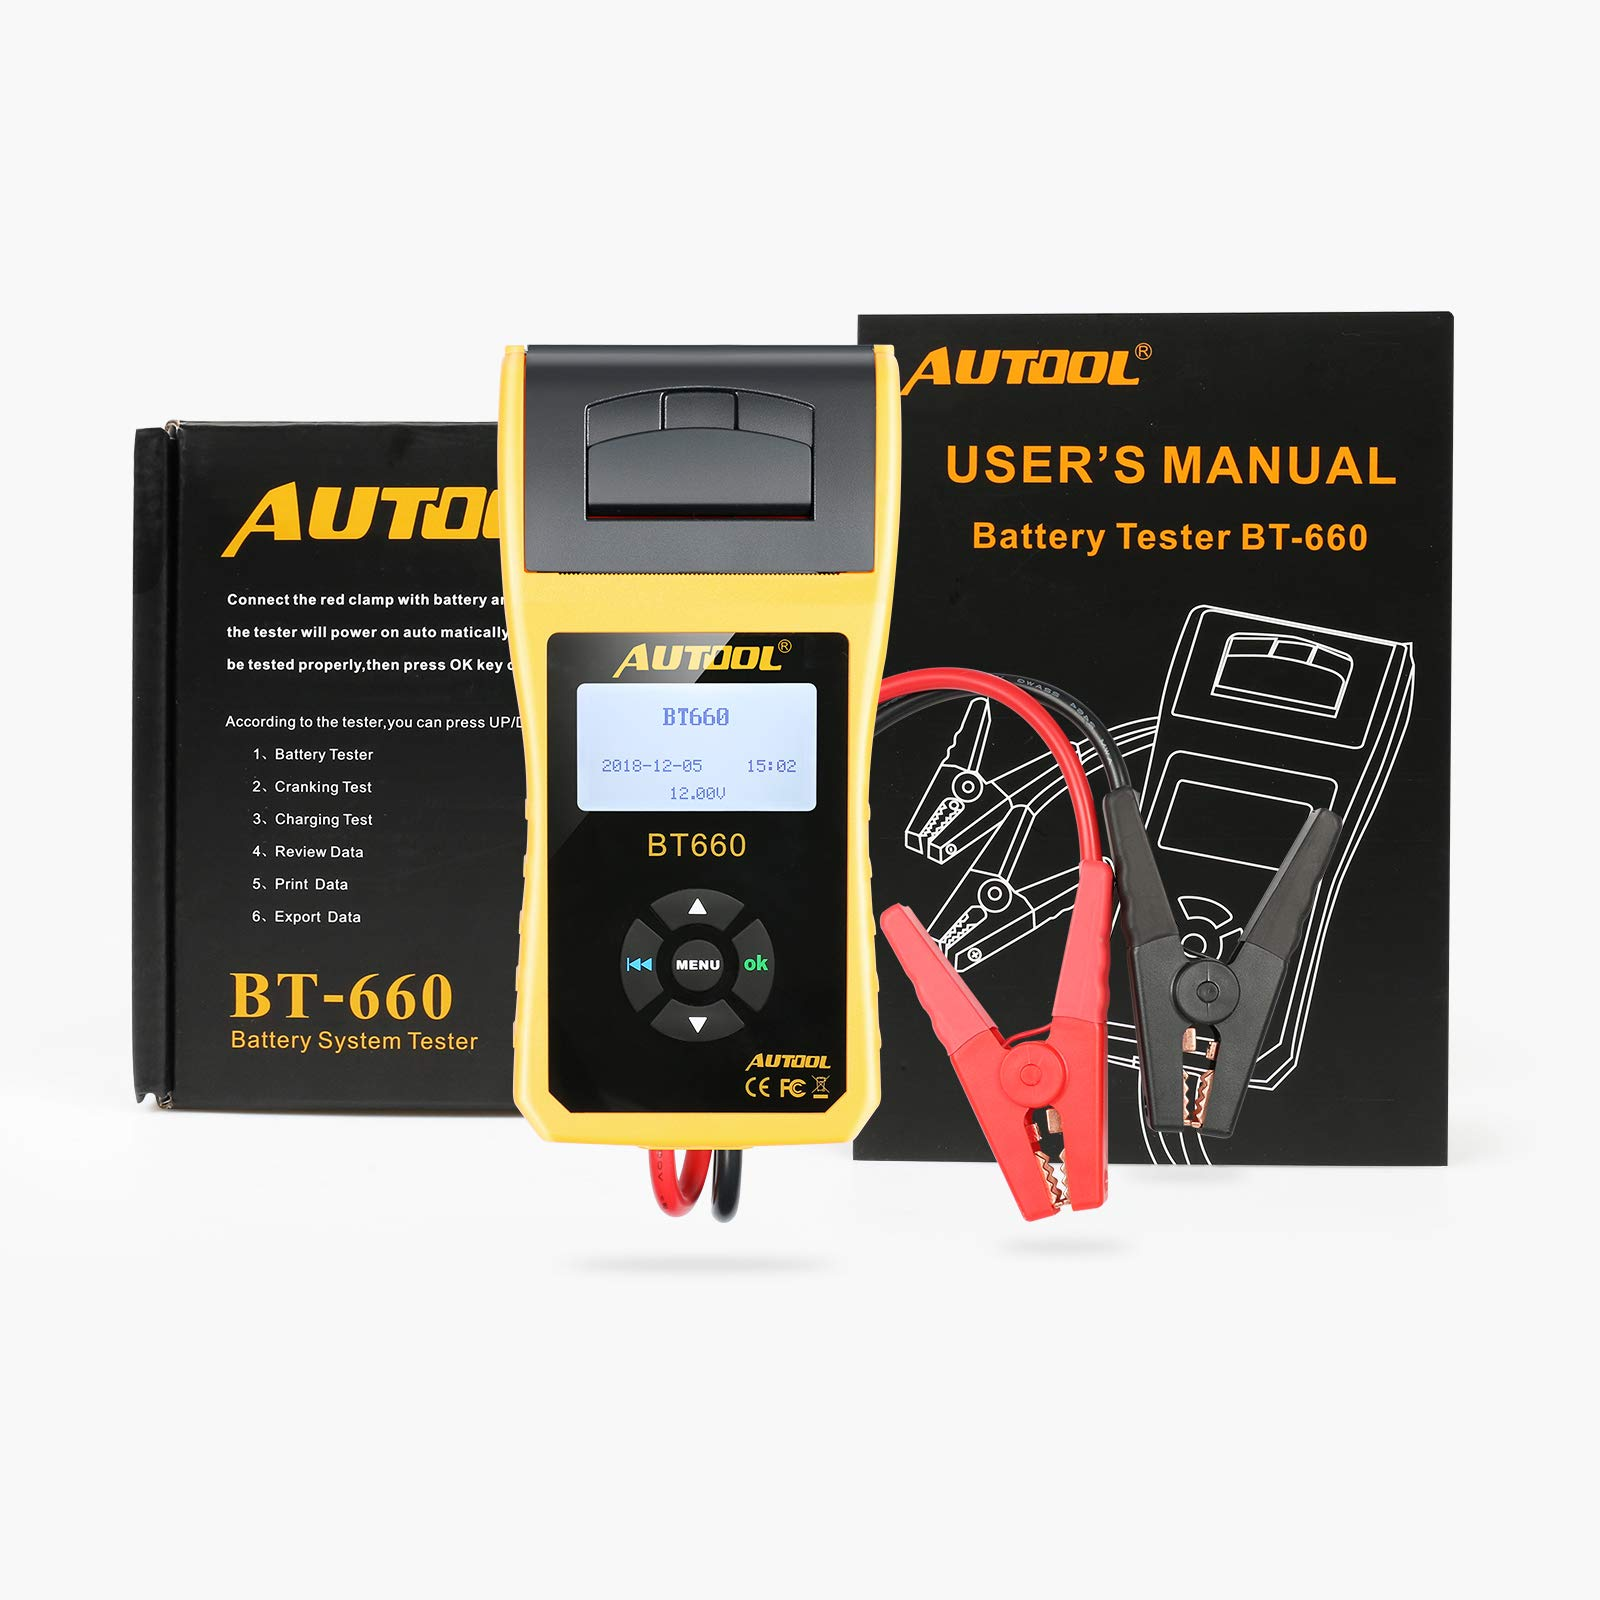 AUTOOL BT660 Battery Conductance Tester 12V/24V BT-660 Auto Battery Testers Automotive Diagnostic Tools for Heavy Duty Trucks, Light Duty Truck, Cars by AUTOOL (Image #9)